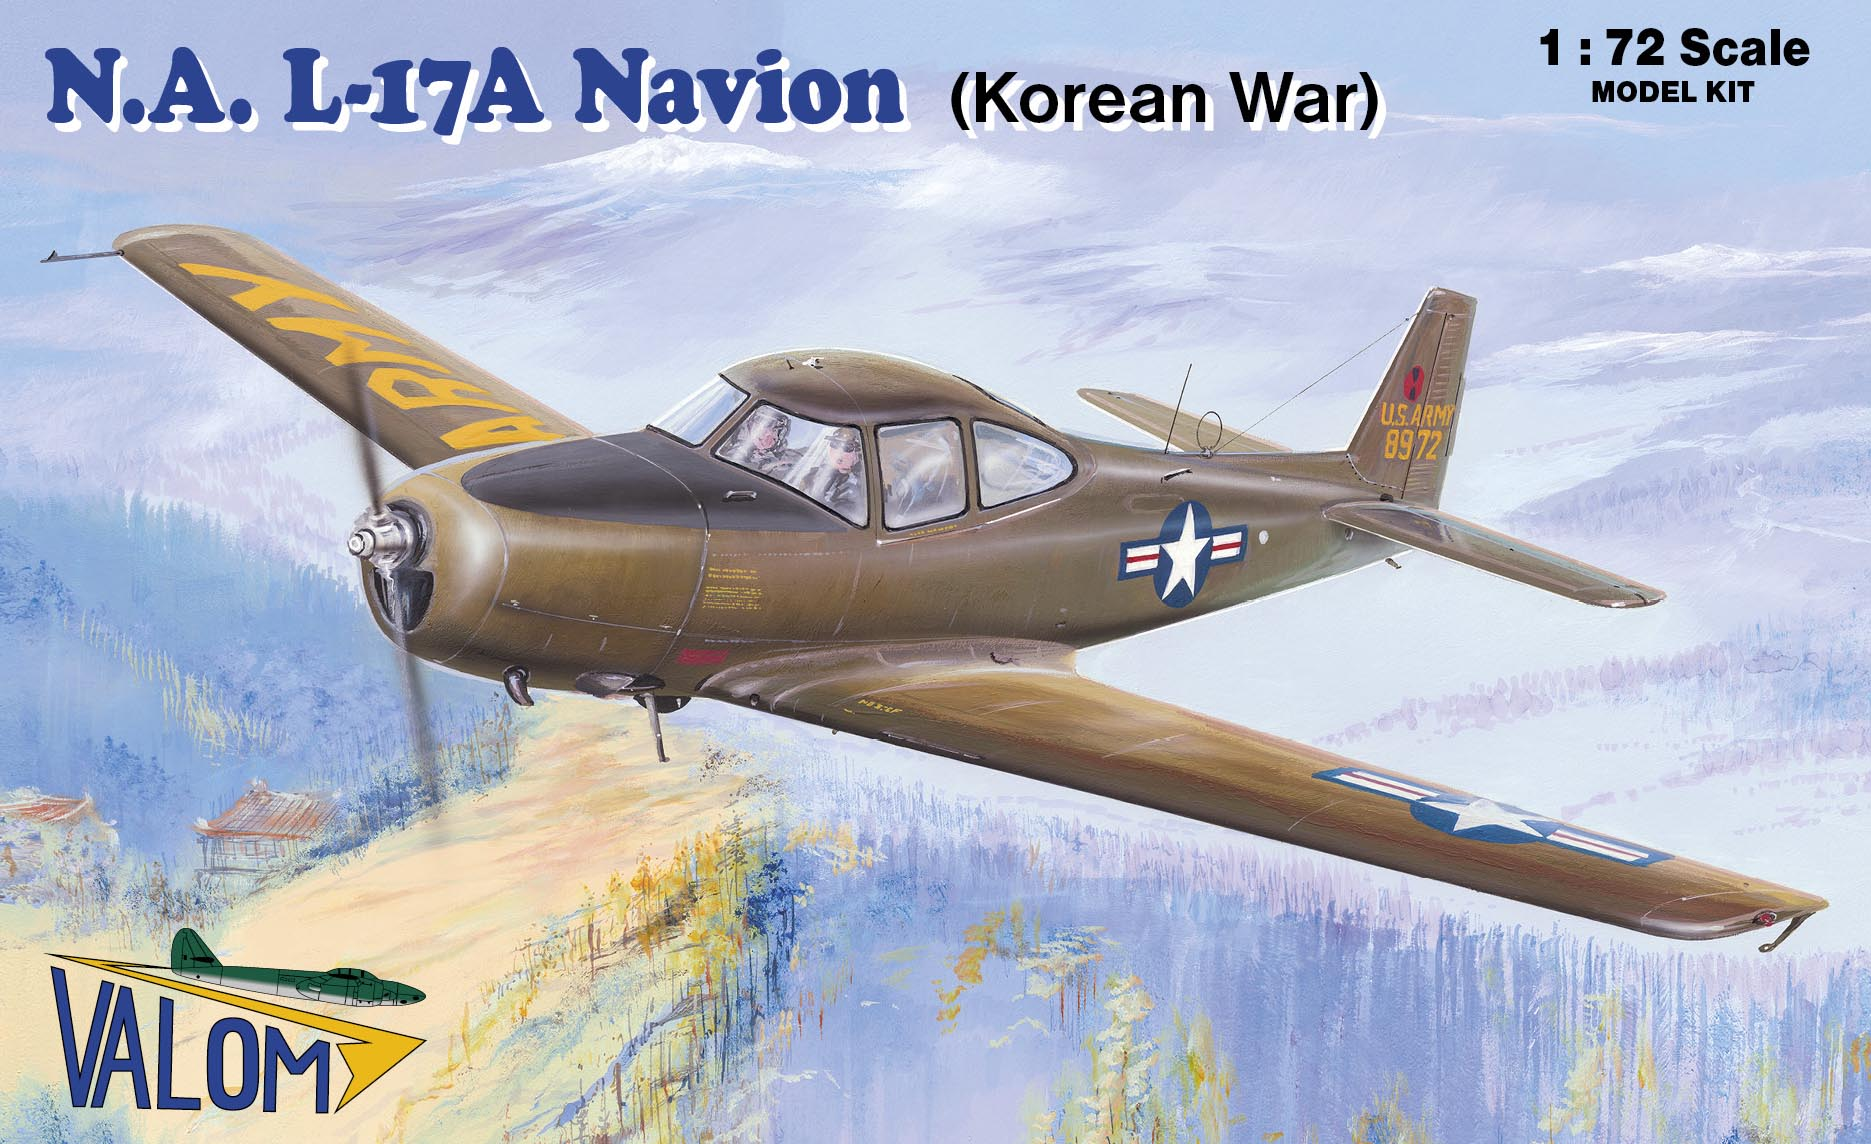 Valom N.A. L-17A Navion (Korean War)